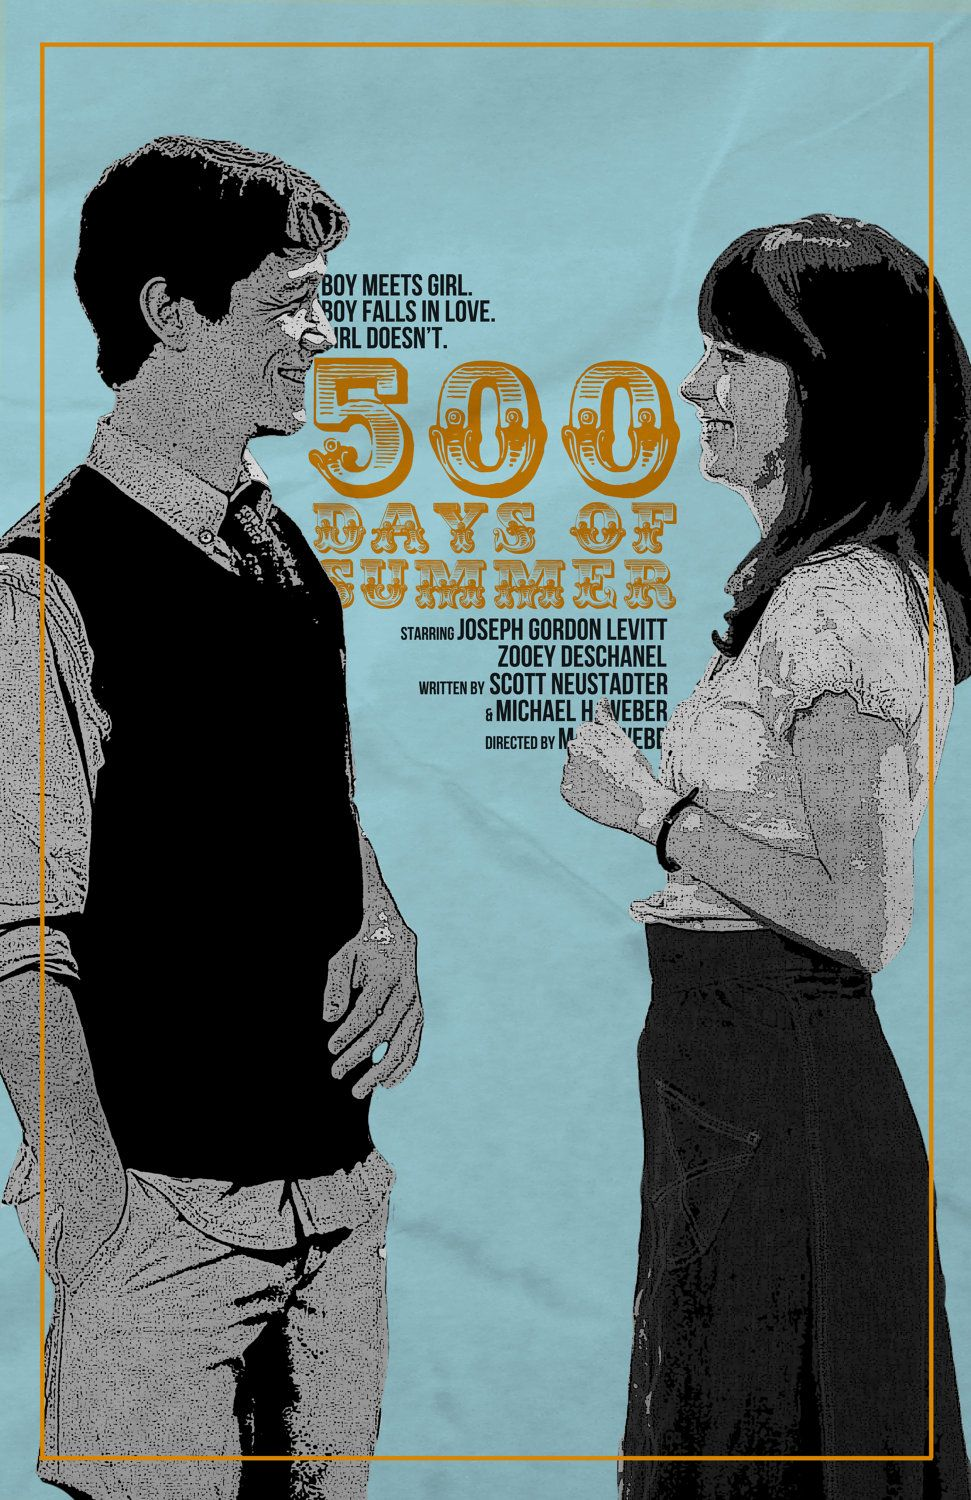 Iccfilm110 Licensed For Non Commercial Use Only 500 Days Of Summer